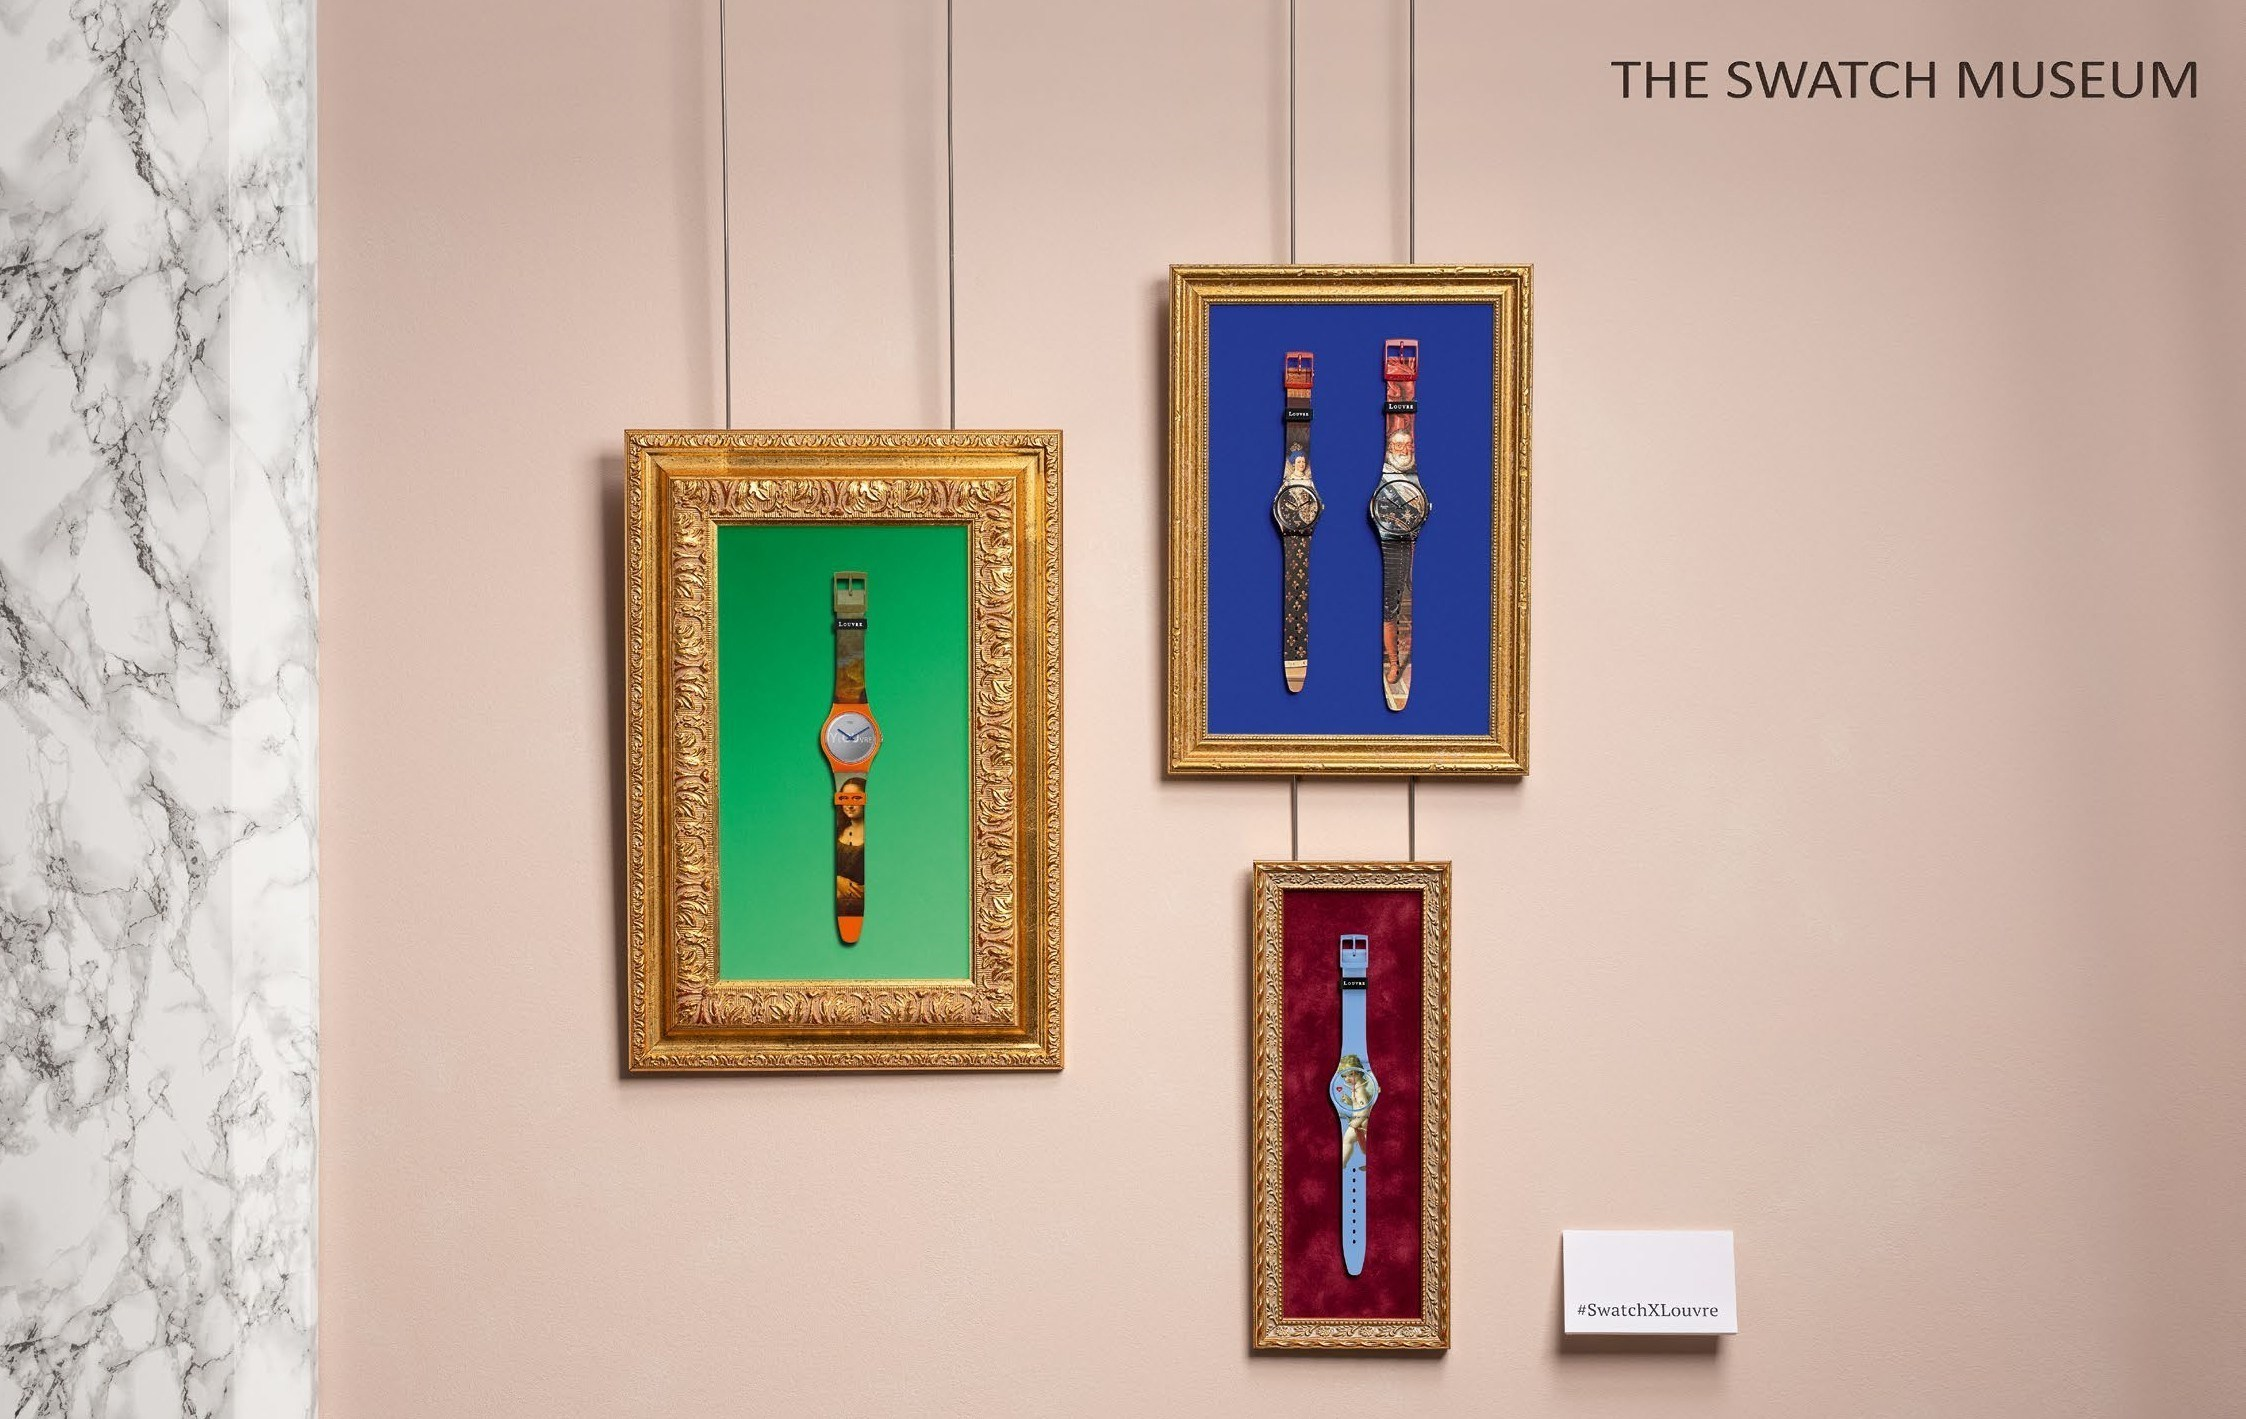 The Louvre and Swatch Museum come together